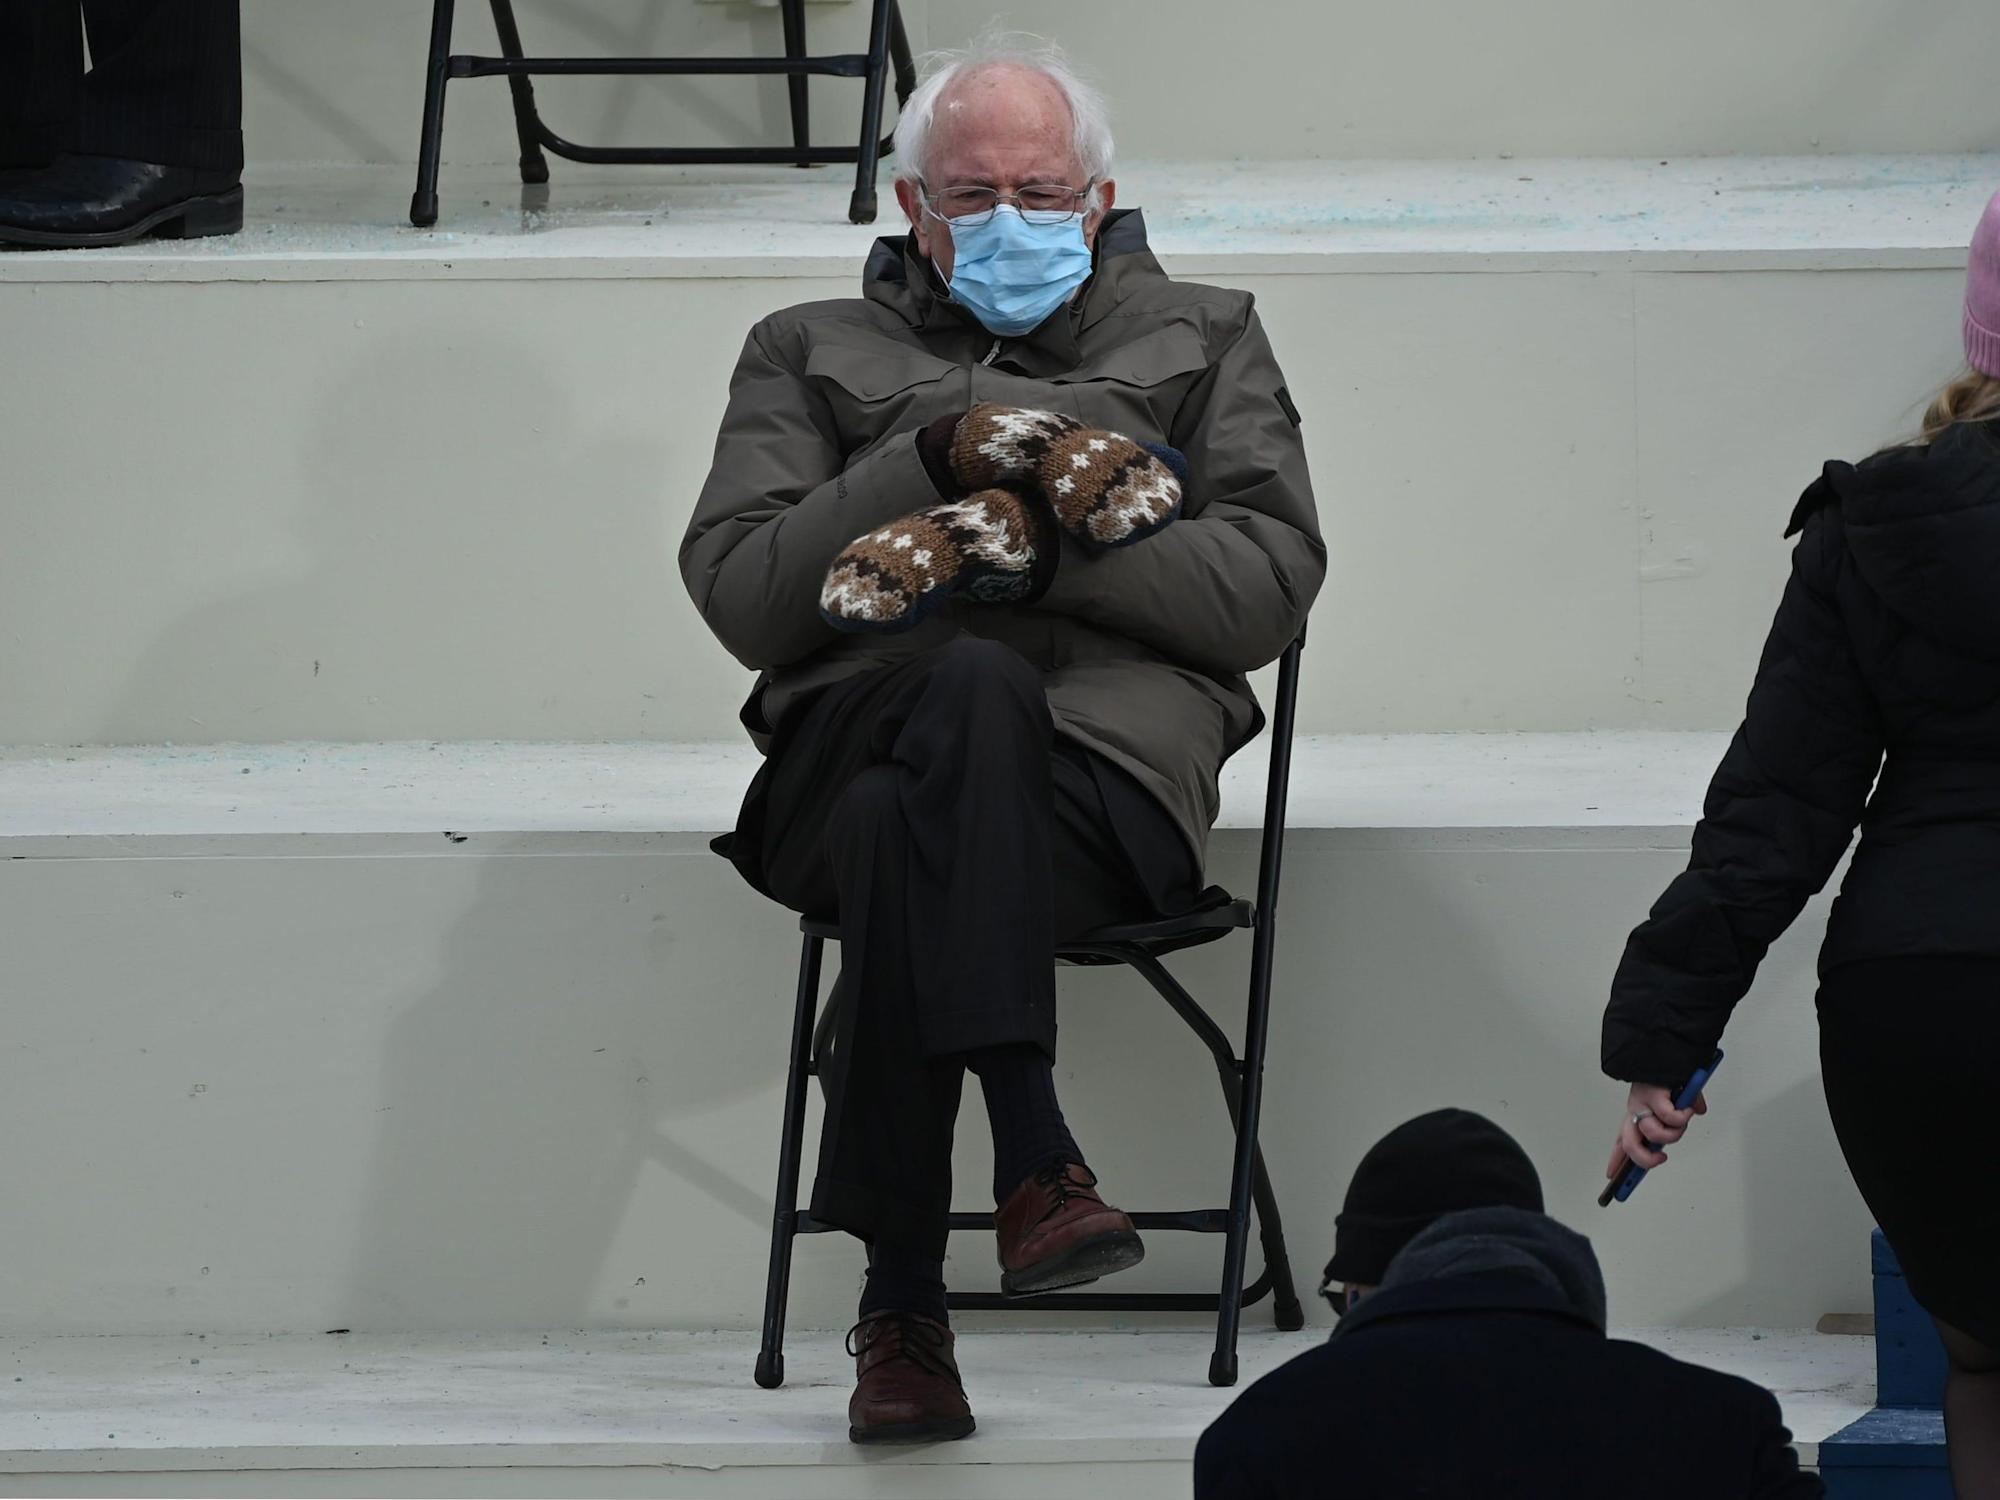 Photographer Of Bernie Sanders Inauguration Meme Said It S Not That Great Of A Picture But He Liked The Senator S Mittens